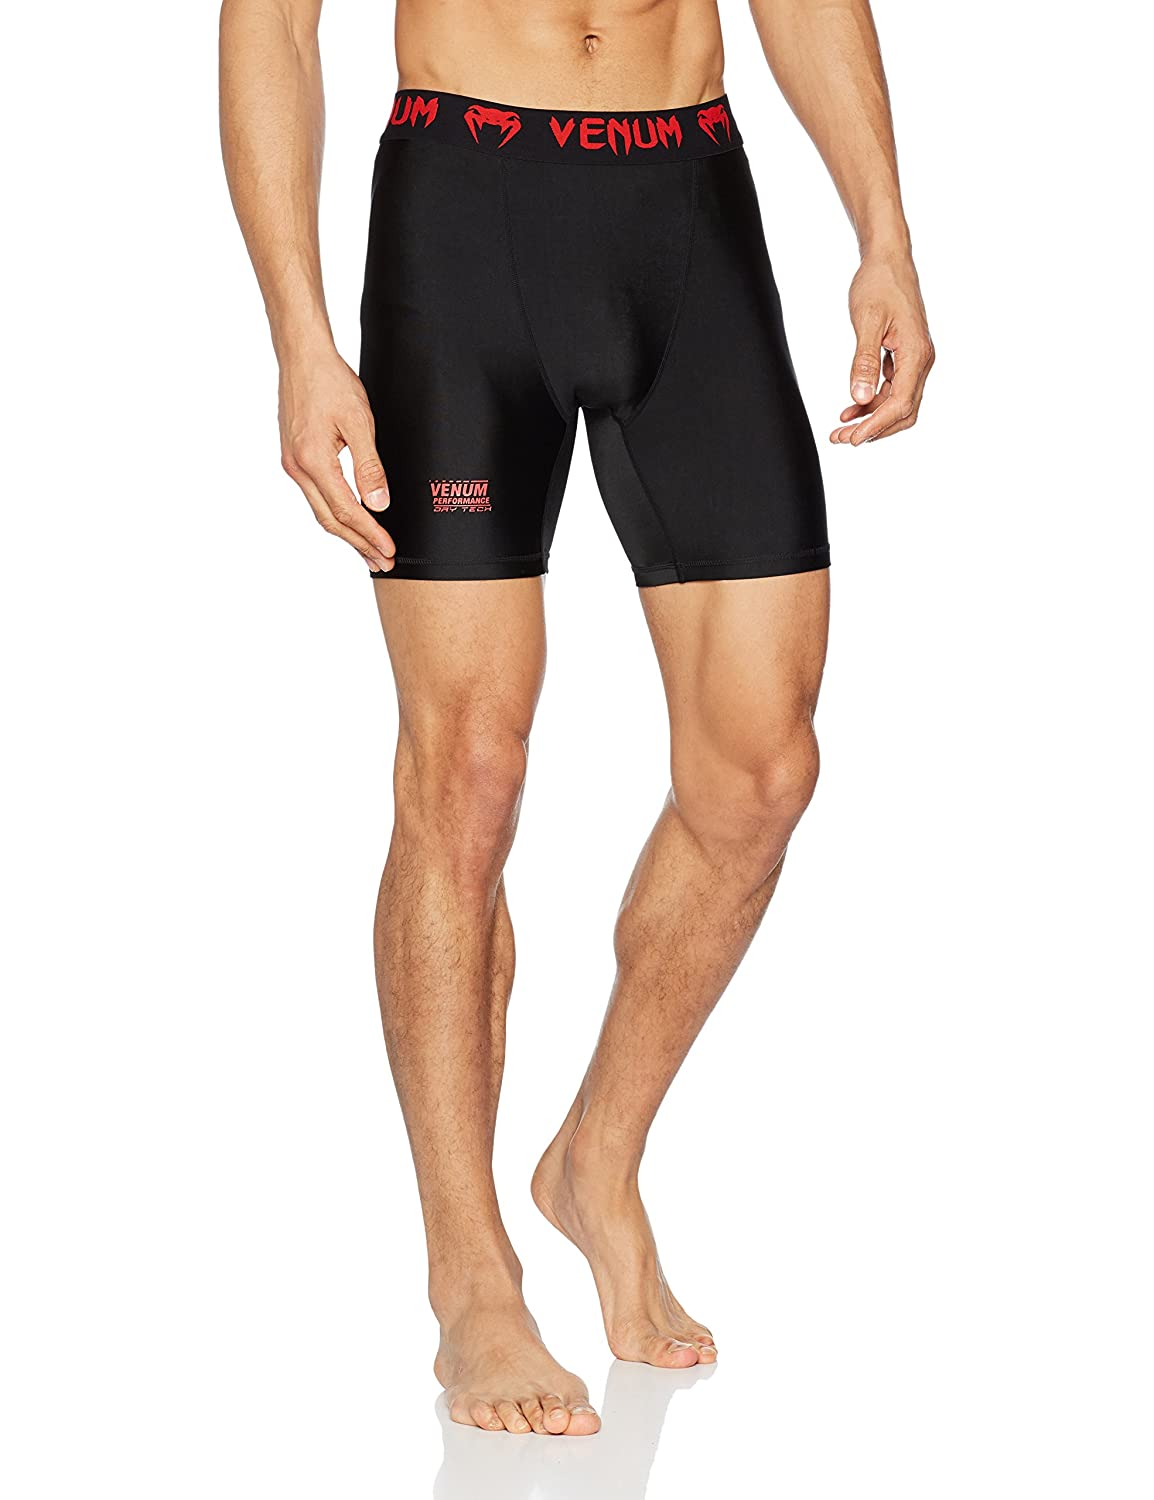 Venum Contender Compression Shorts US-VENUM-2027-Black/Red-L-P